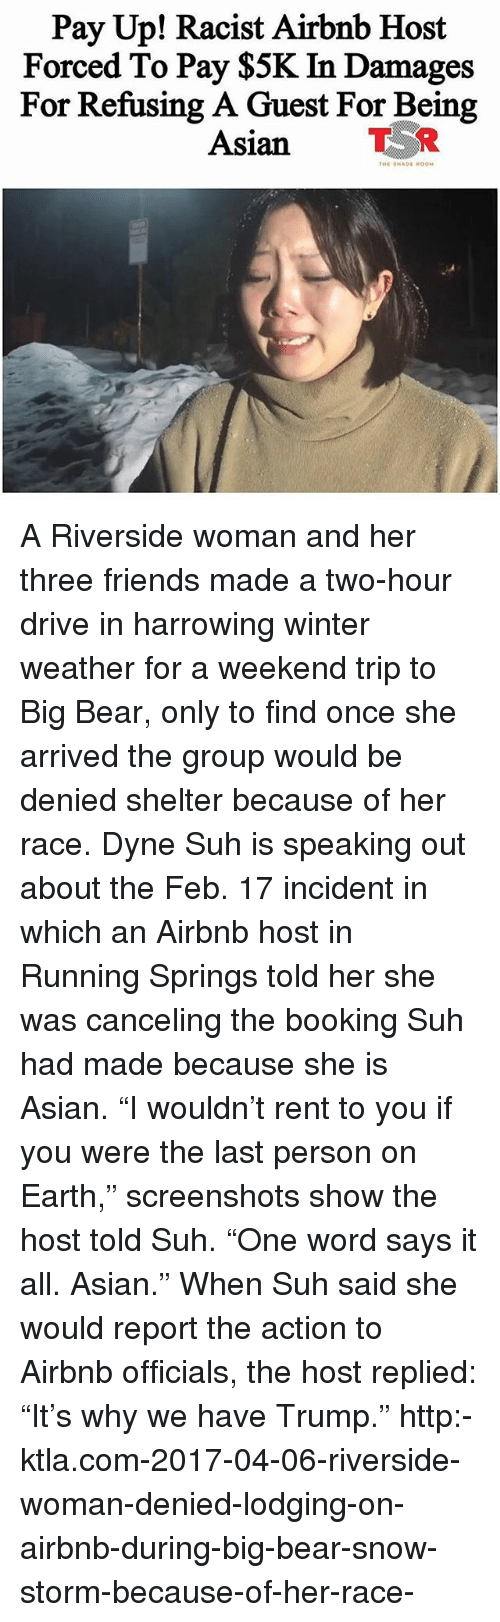 """snow storm: Pay Up! Racist Airbnb Host  Forced To Pay $5K In Damages  For Refusing A Guest For Being  Asian TR A Riverside woman and her three friends made a two-hour drive in harrowing winter weather for a weekend trip to Big Bear, only to find once she arrived the group would be denied shelter because of her race. Dyne Suh is speaking out about the Feb. 17 incident in which an Airbnb host in Running Springs told her she was canceling the booking Suh had made because she is Asian. """"I wouldn't rent to you if you were the last person on Earth,"""" screenshots show the host told Suh. """"One word says it all. Asian."""" When Suh said she would report the action to Airbnb officials, the host replied: """"It's why we have Trump."""" http:-ktla.com-2017-04-06-riverside-woman-denied-lodging-on-airbnb-during-big-bear-snow-storm-because-of-her-race-"""